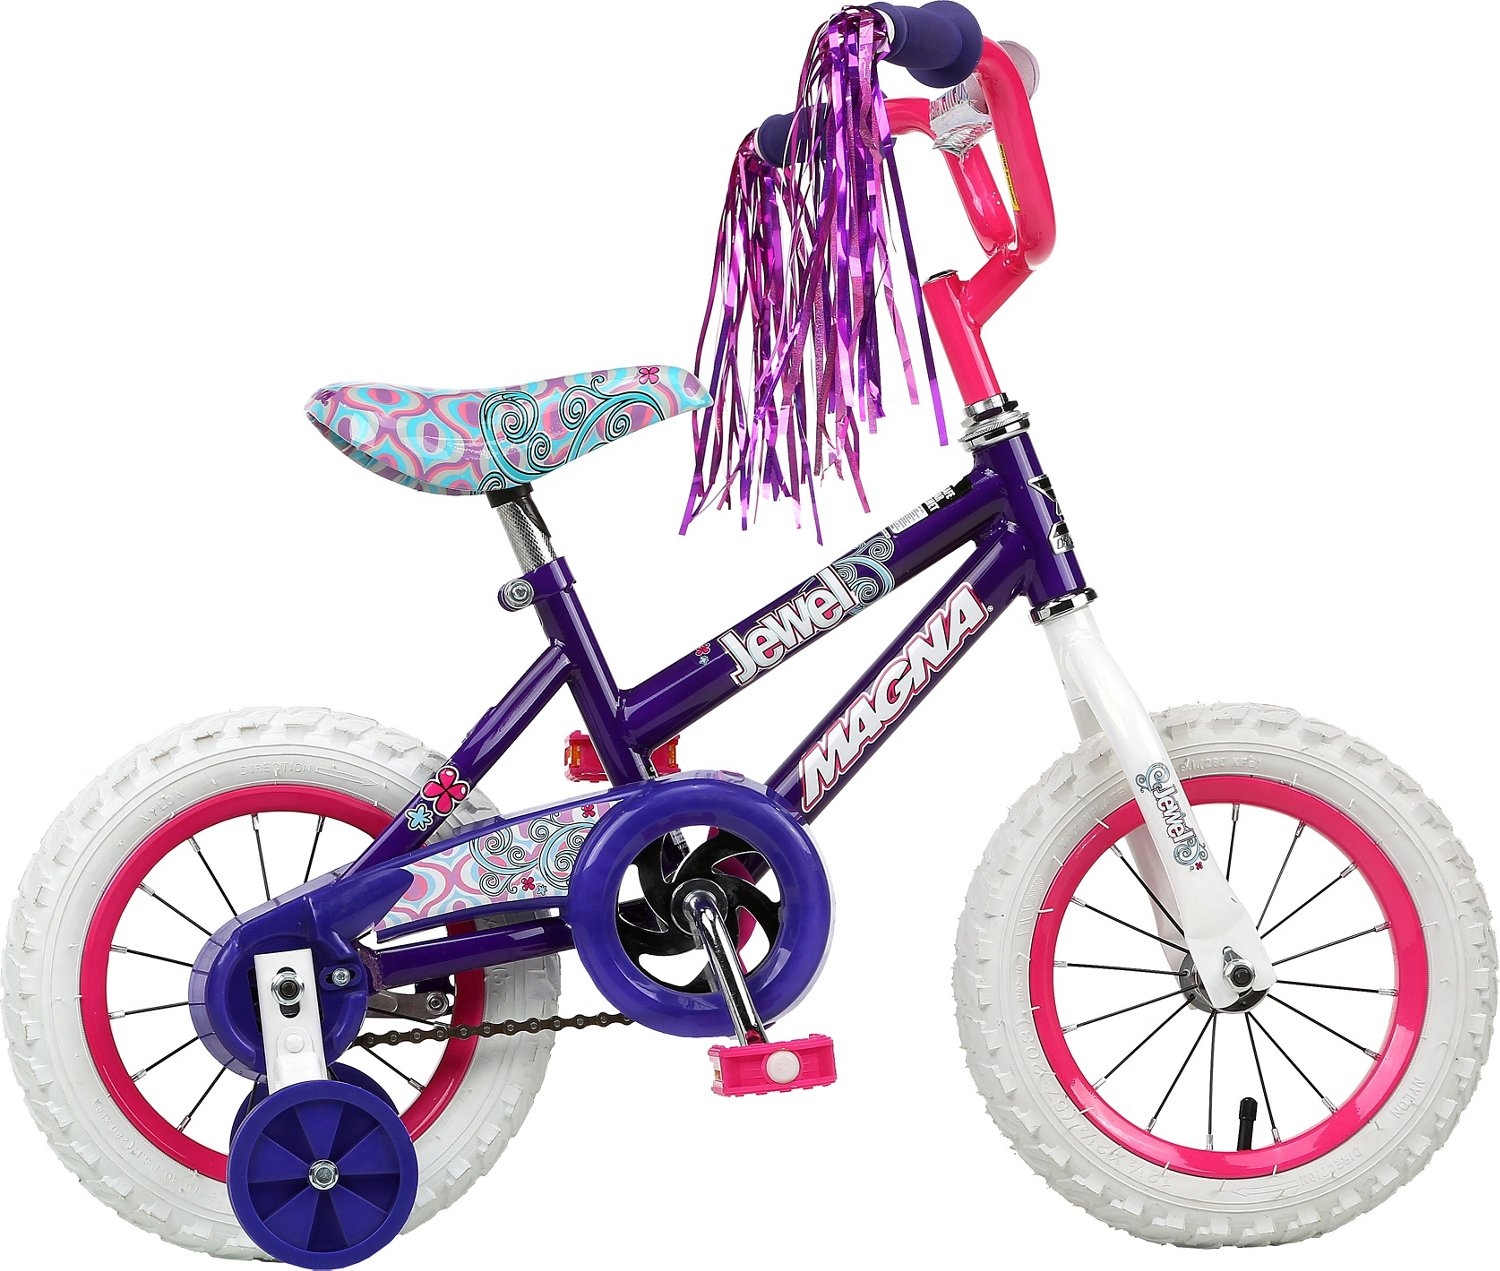 20c4d555db0 Display product reviews for Magna Girls' 12 in Jewel Bike